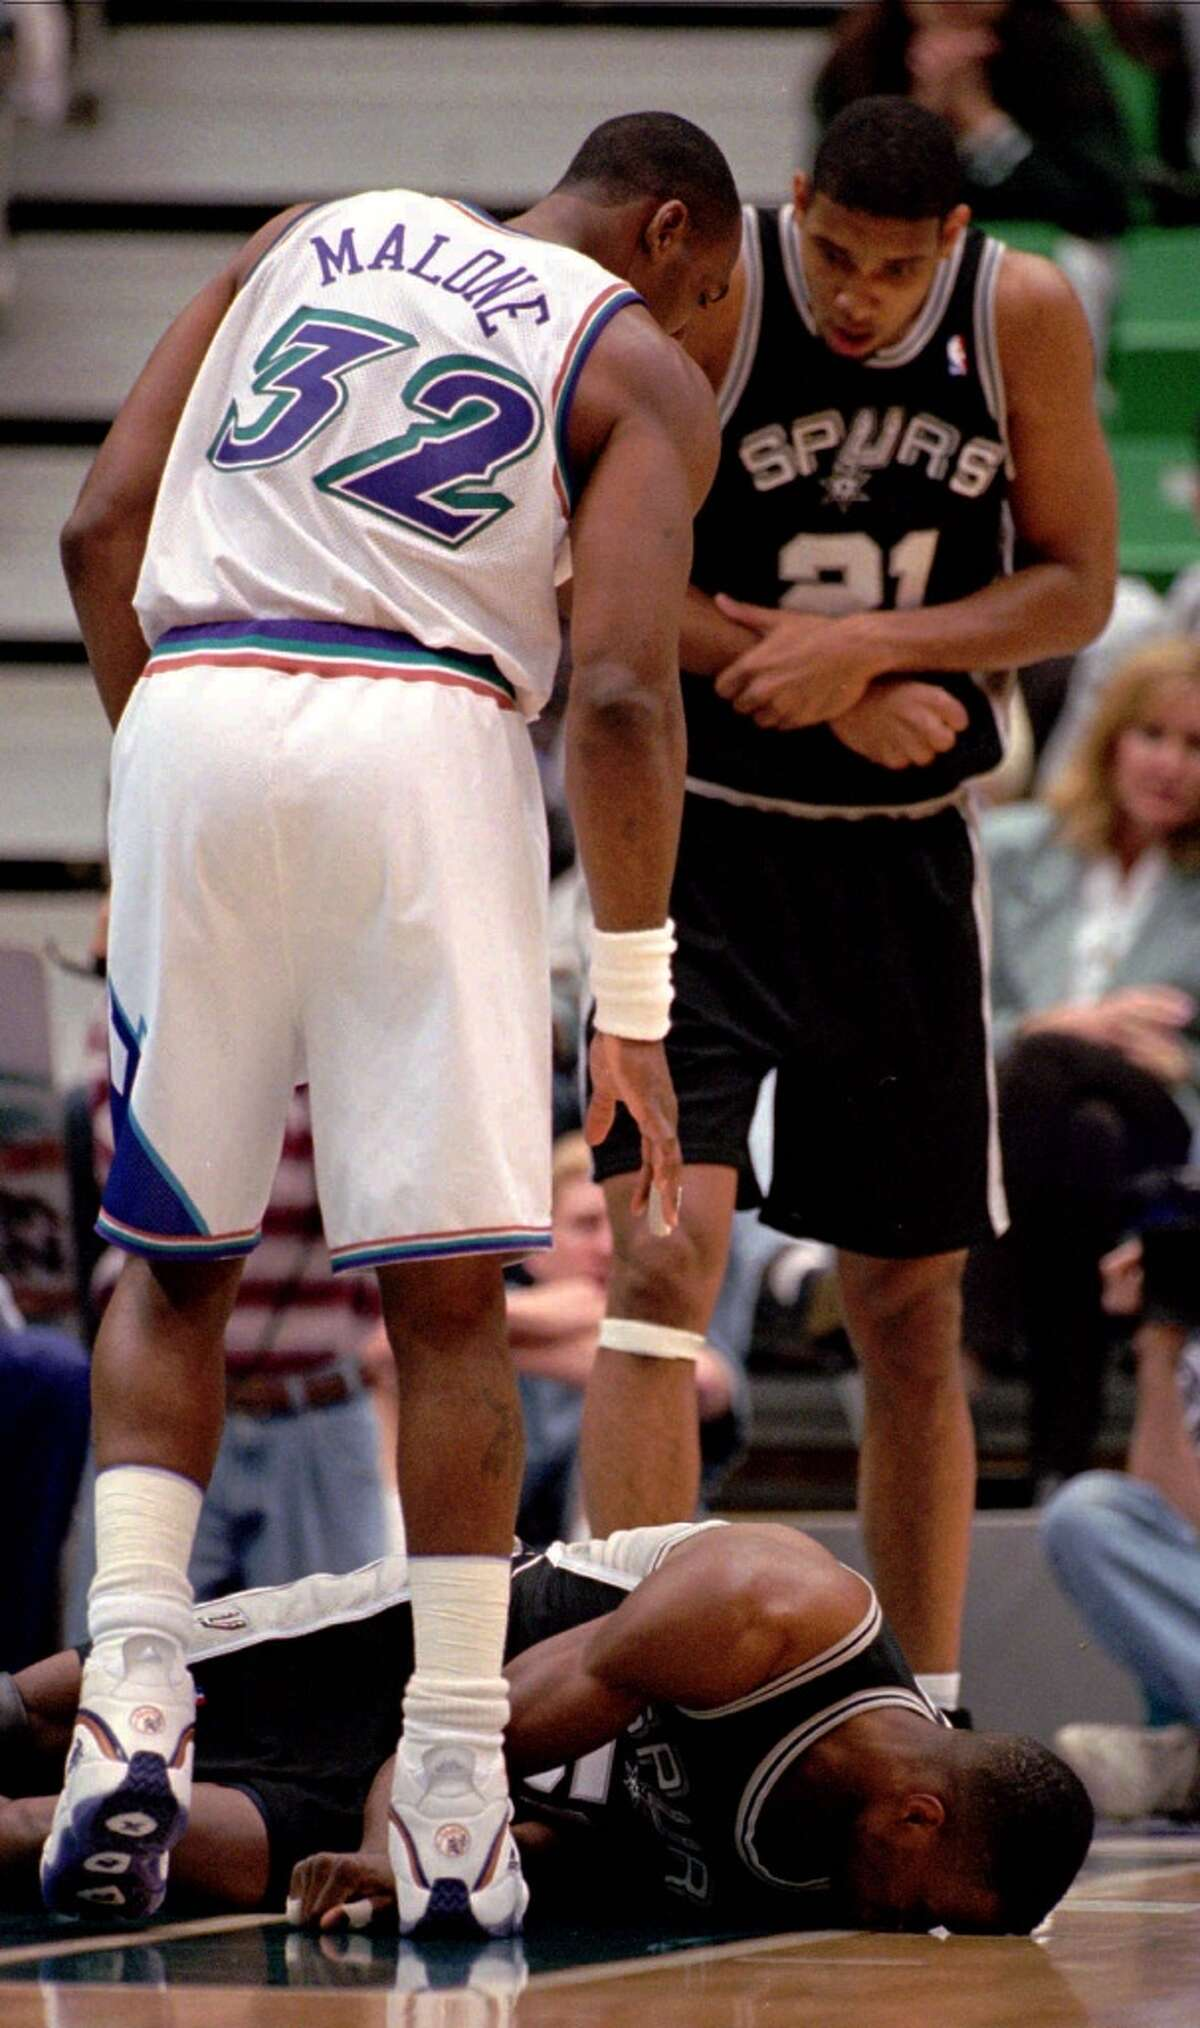 Remember the Elbow! In 1998, Utah Jazz great Karl Malone knocked out David Robinson with his elbow. Robinson got a concussion. Malone got eternal hatred in San Antonio. To add insult to injury, a month after Malone sent the Admiral to the hospital, he knocked the Spurs out of the postseason. PHOTO: The Spurs' Robinson hits the floor and is knocked out cold as teammate Tim Duncan (21) and the Jazz's Malone look on in the first few minutes of the first quarter on April 8, 1998. Robinson was revived and taken to a local hospital, with a possible concussion, for a CAT scan.